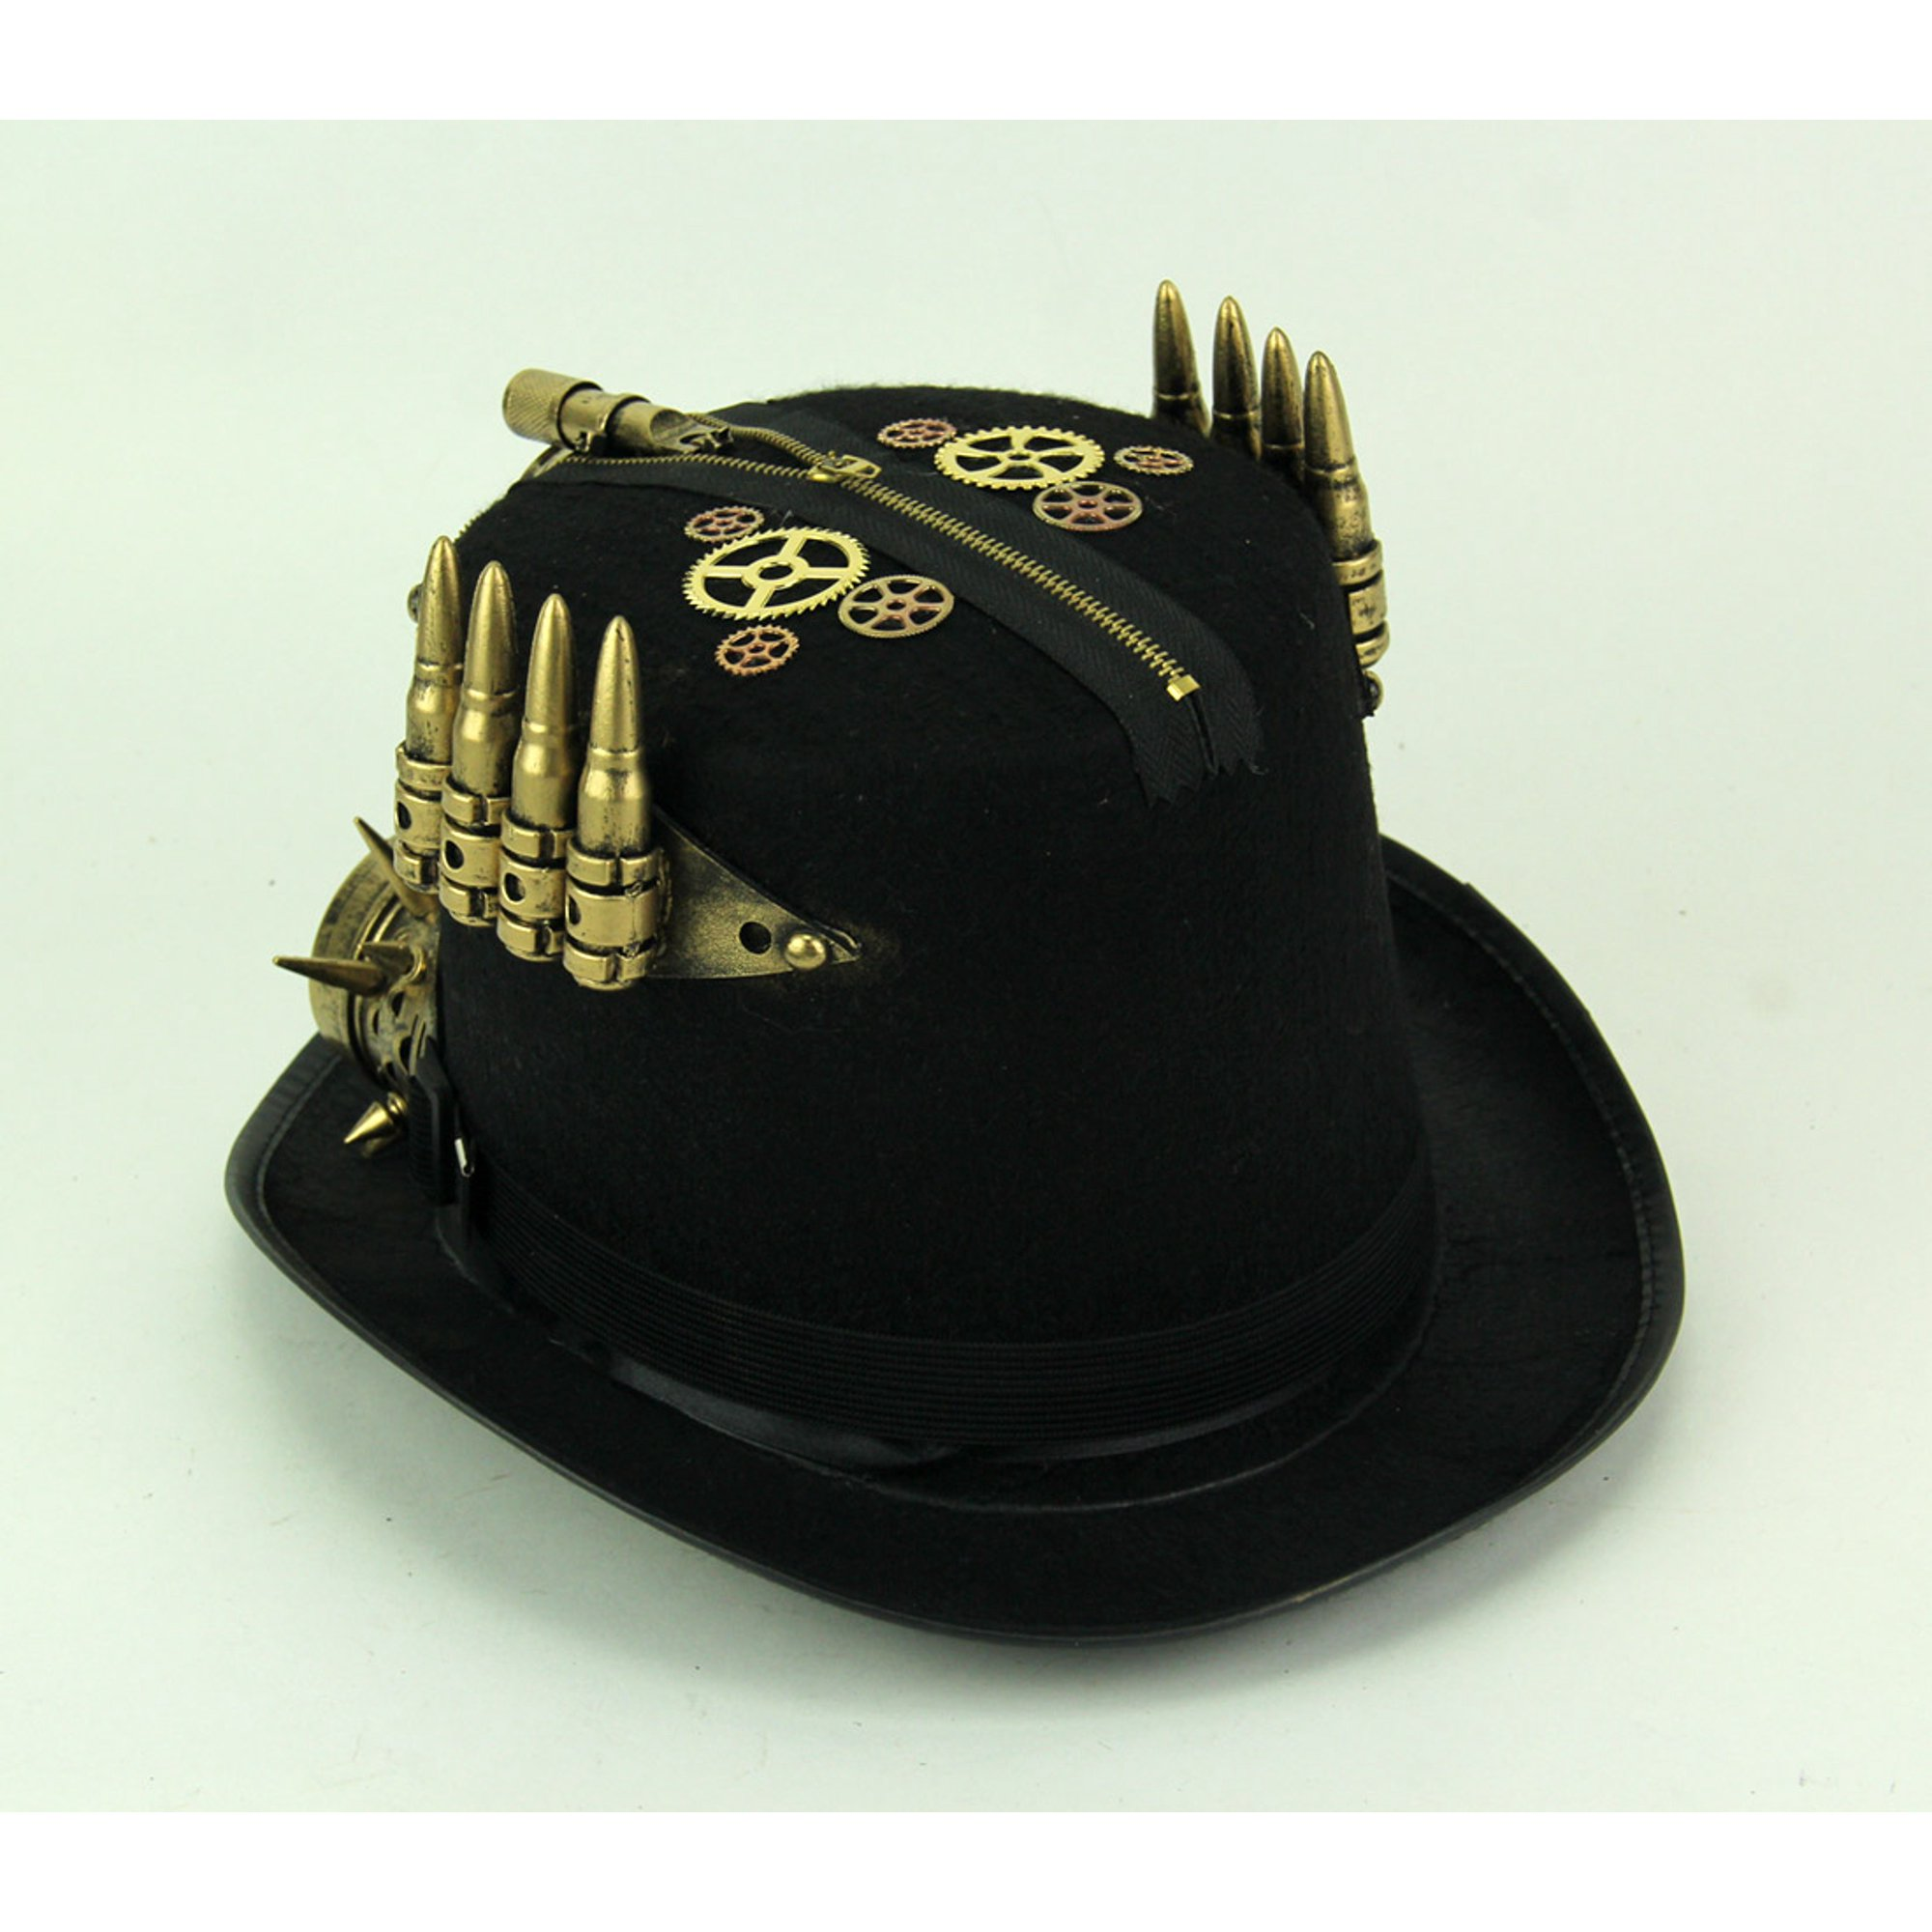 Voorkeur Black and Brass Steampunk Top Hat with Pressure Gauge and Goggles #LE02